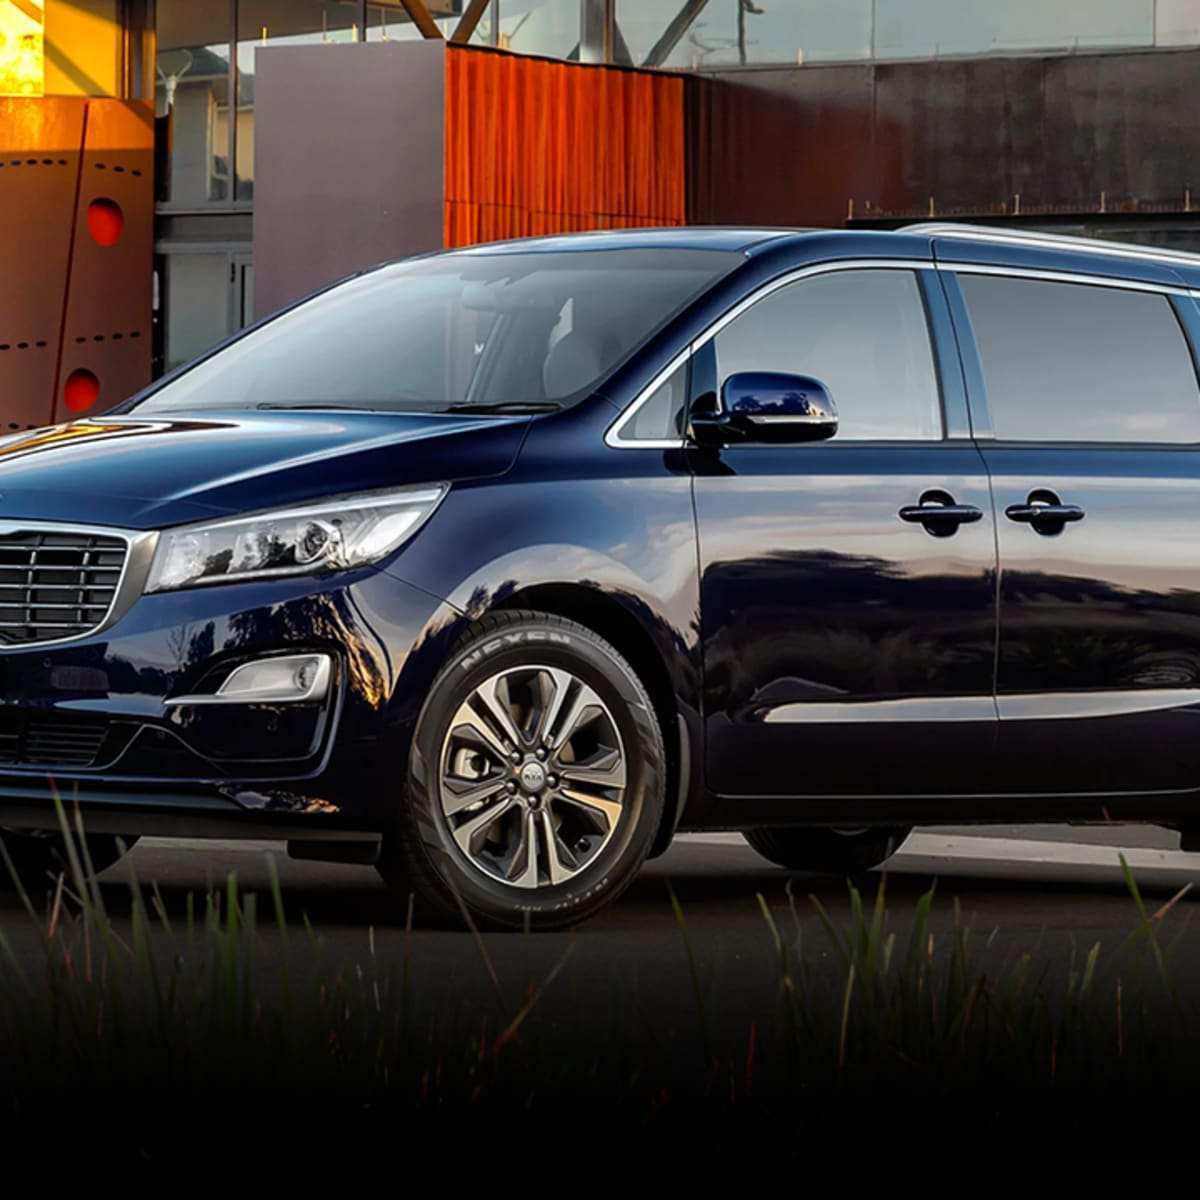 51 The Best 2019 The All Kia Sedona Release Date And Concept